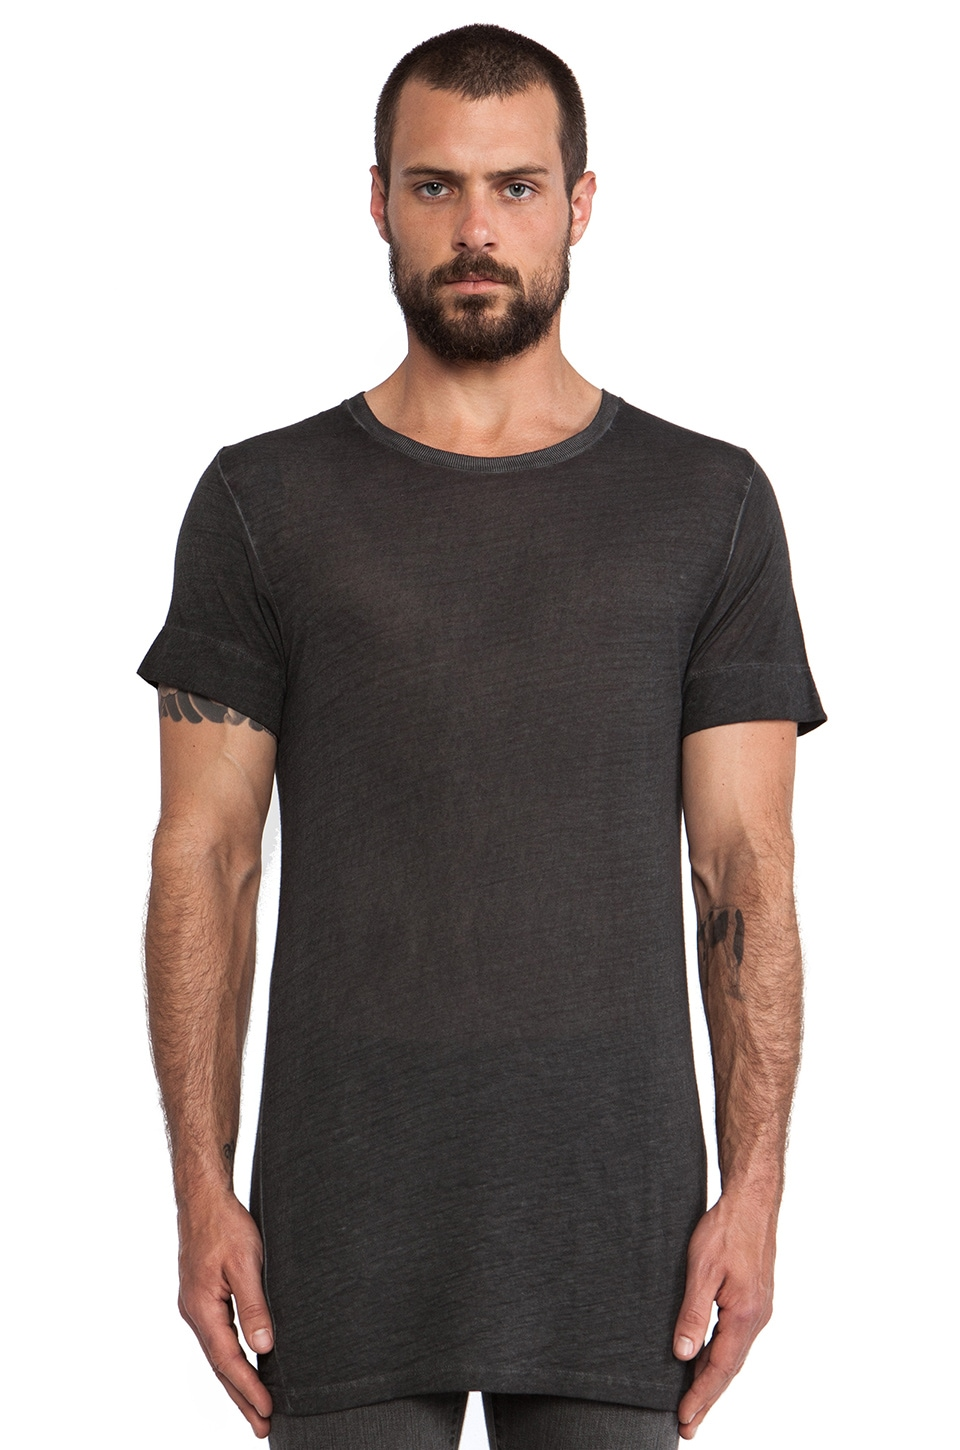 IRO Nais T-Shirt in Black